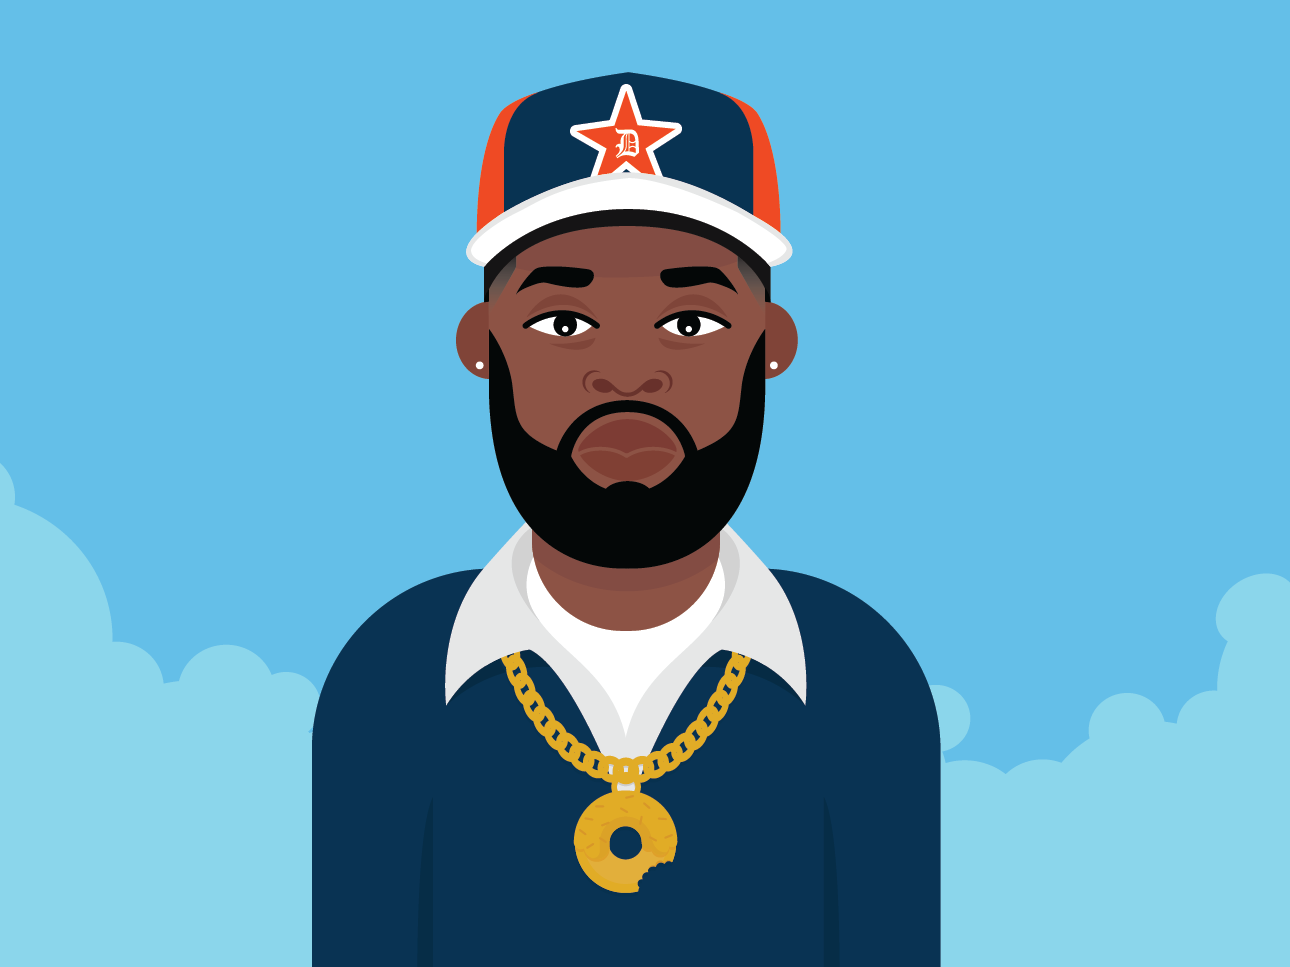 Jay Dee part 2 graphic designer akaimpc mpc producer hiphop jaydee dilladonuts dilla graphic  design vector illustration design